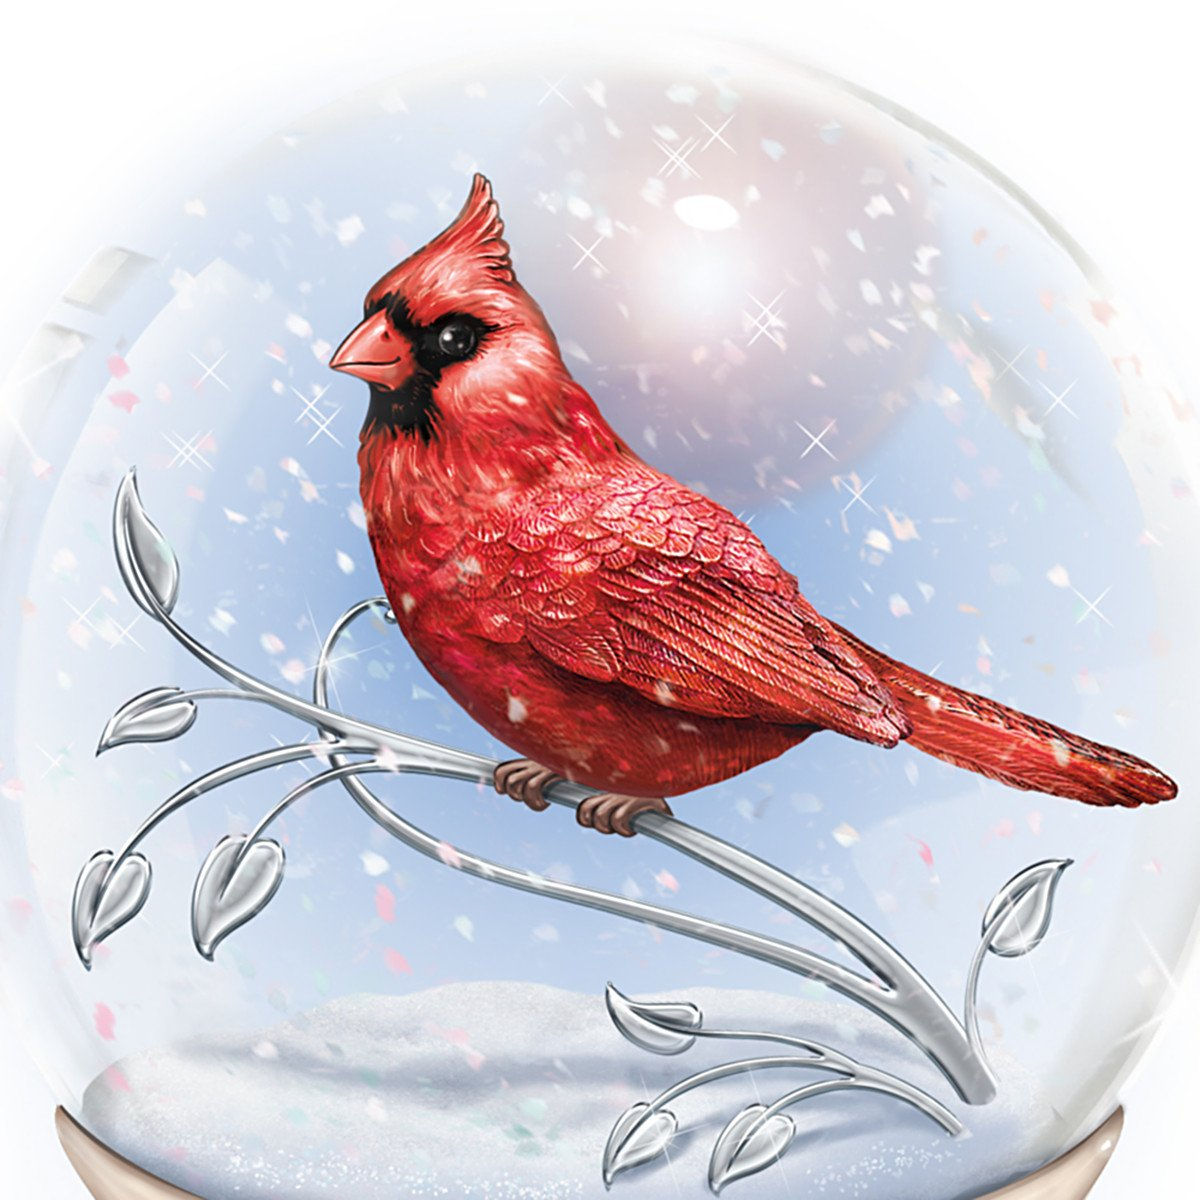 Messenger From Heaven Memorial Cardinal Glitter Globe by The Bradford Exchange by Bradford Exchange (Image #2)